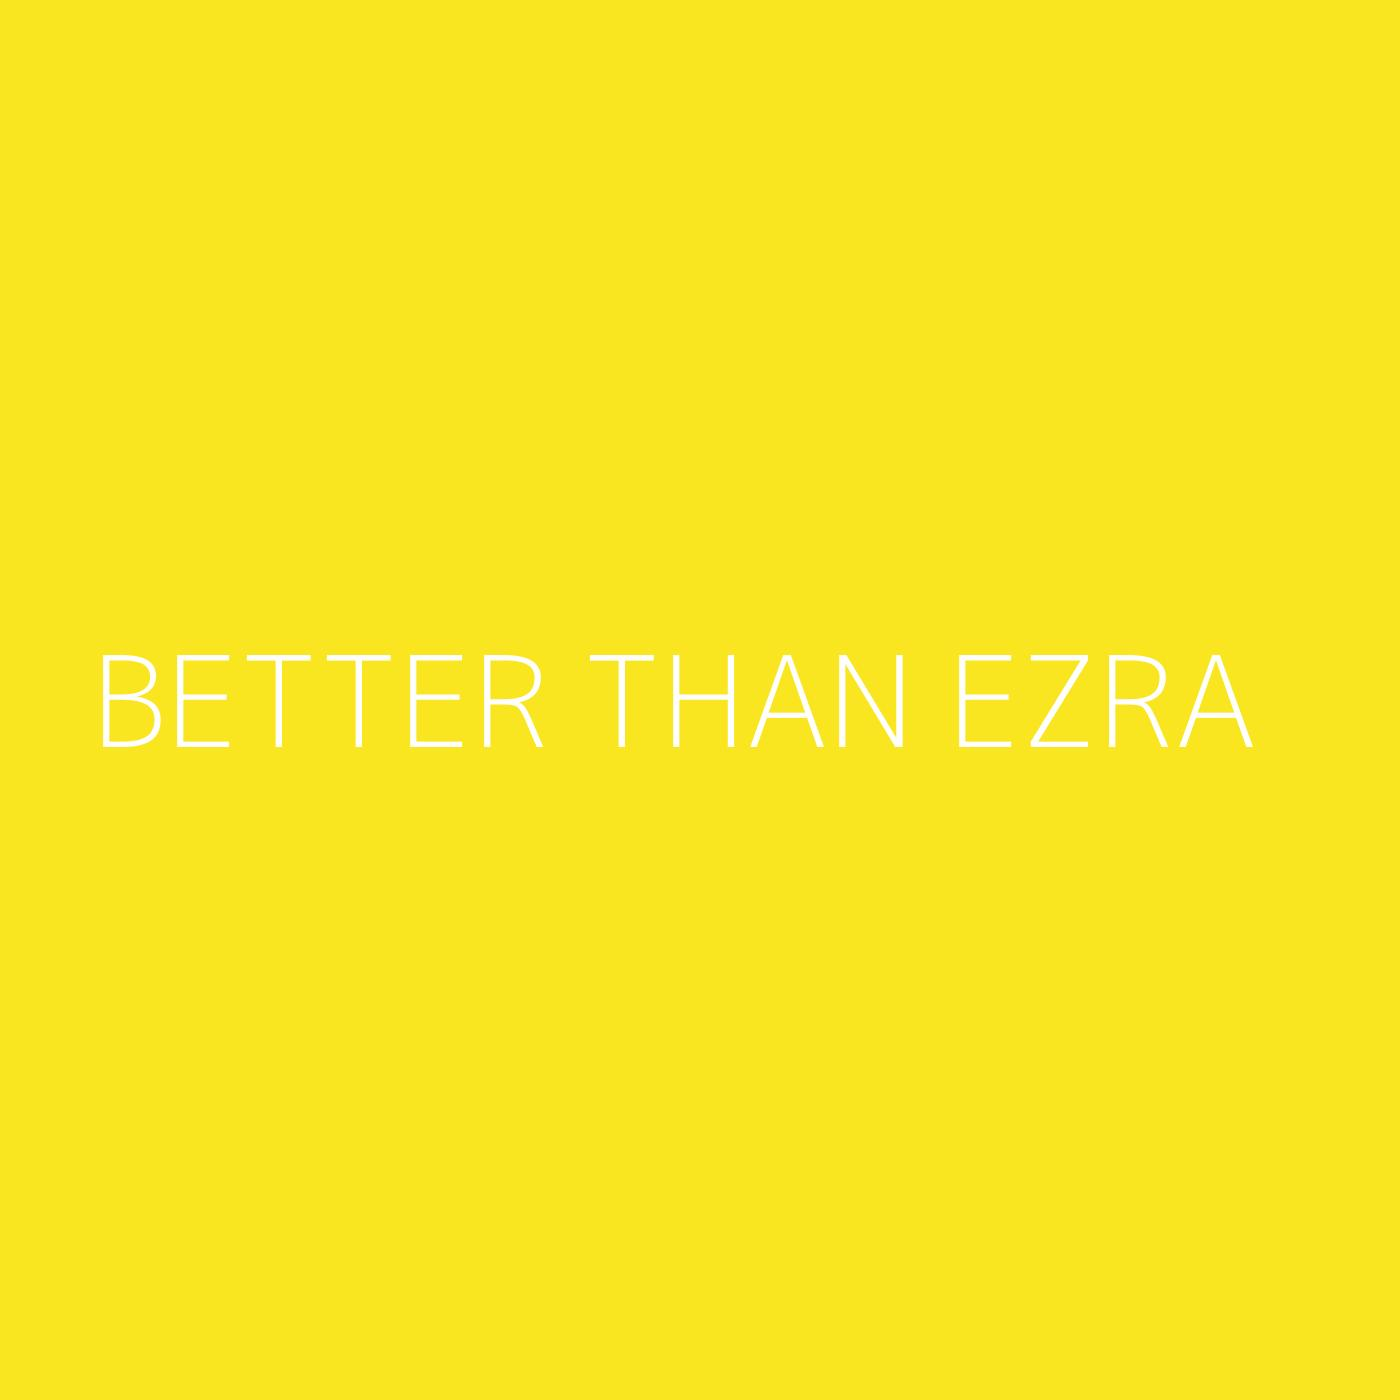 Better Than Ezra Playlist Artwork